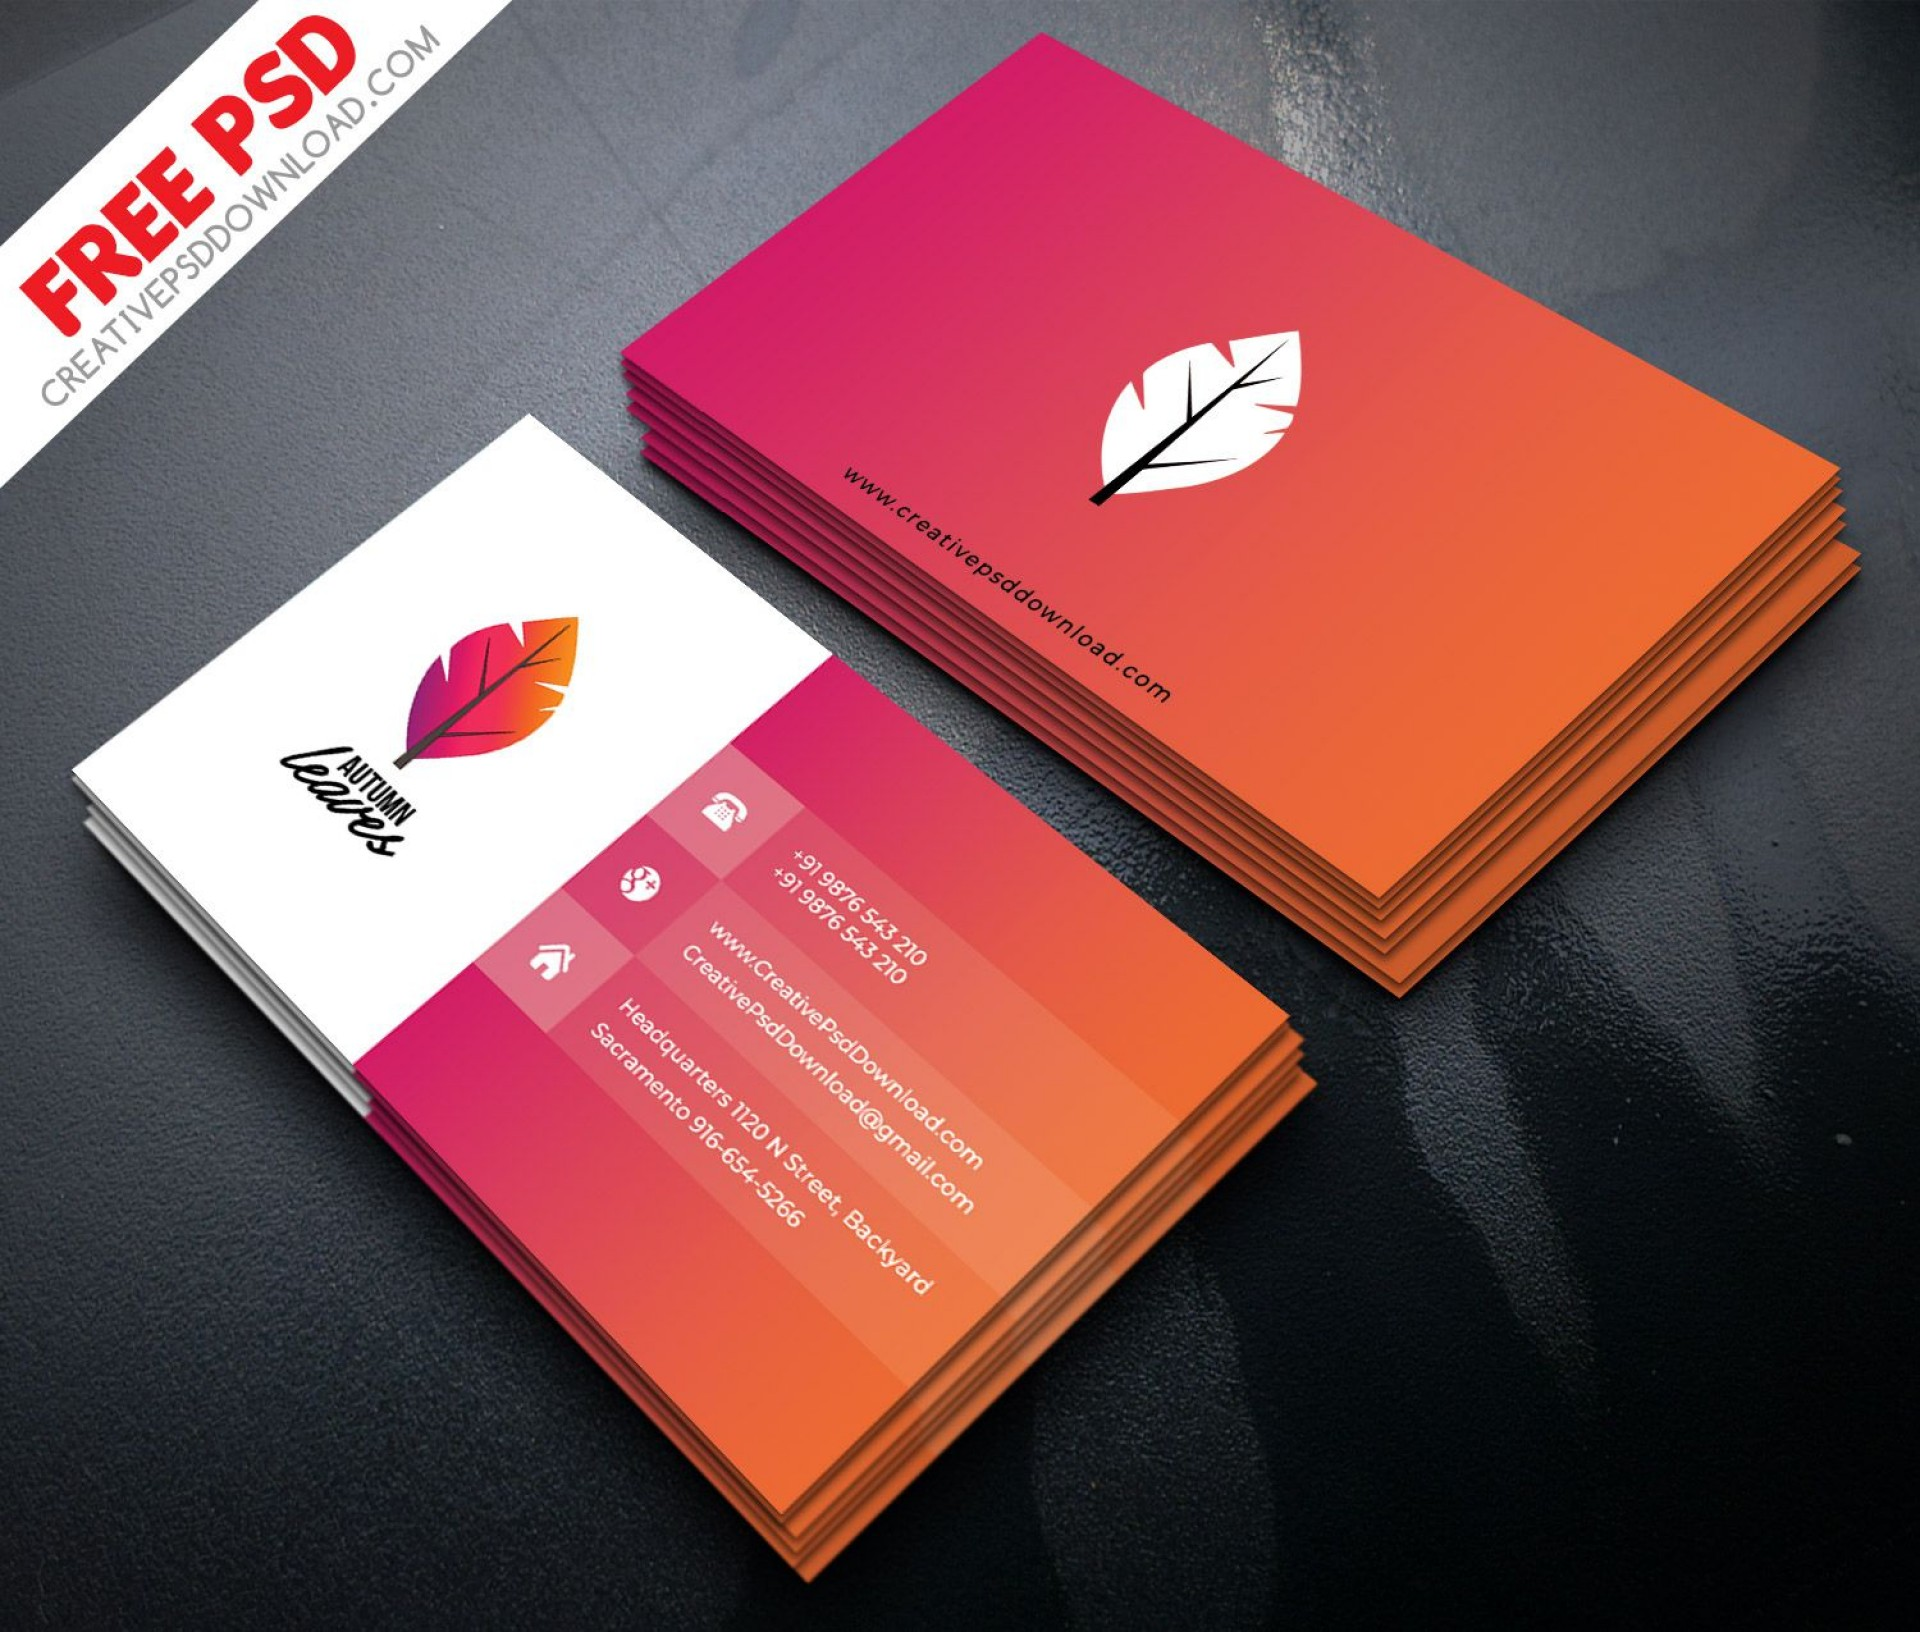 009 Unforgettable Blank Busines Card Template Psd Free Design  Photoshop Download1920